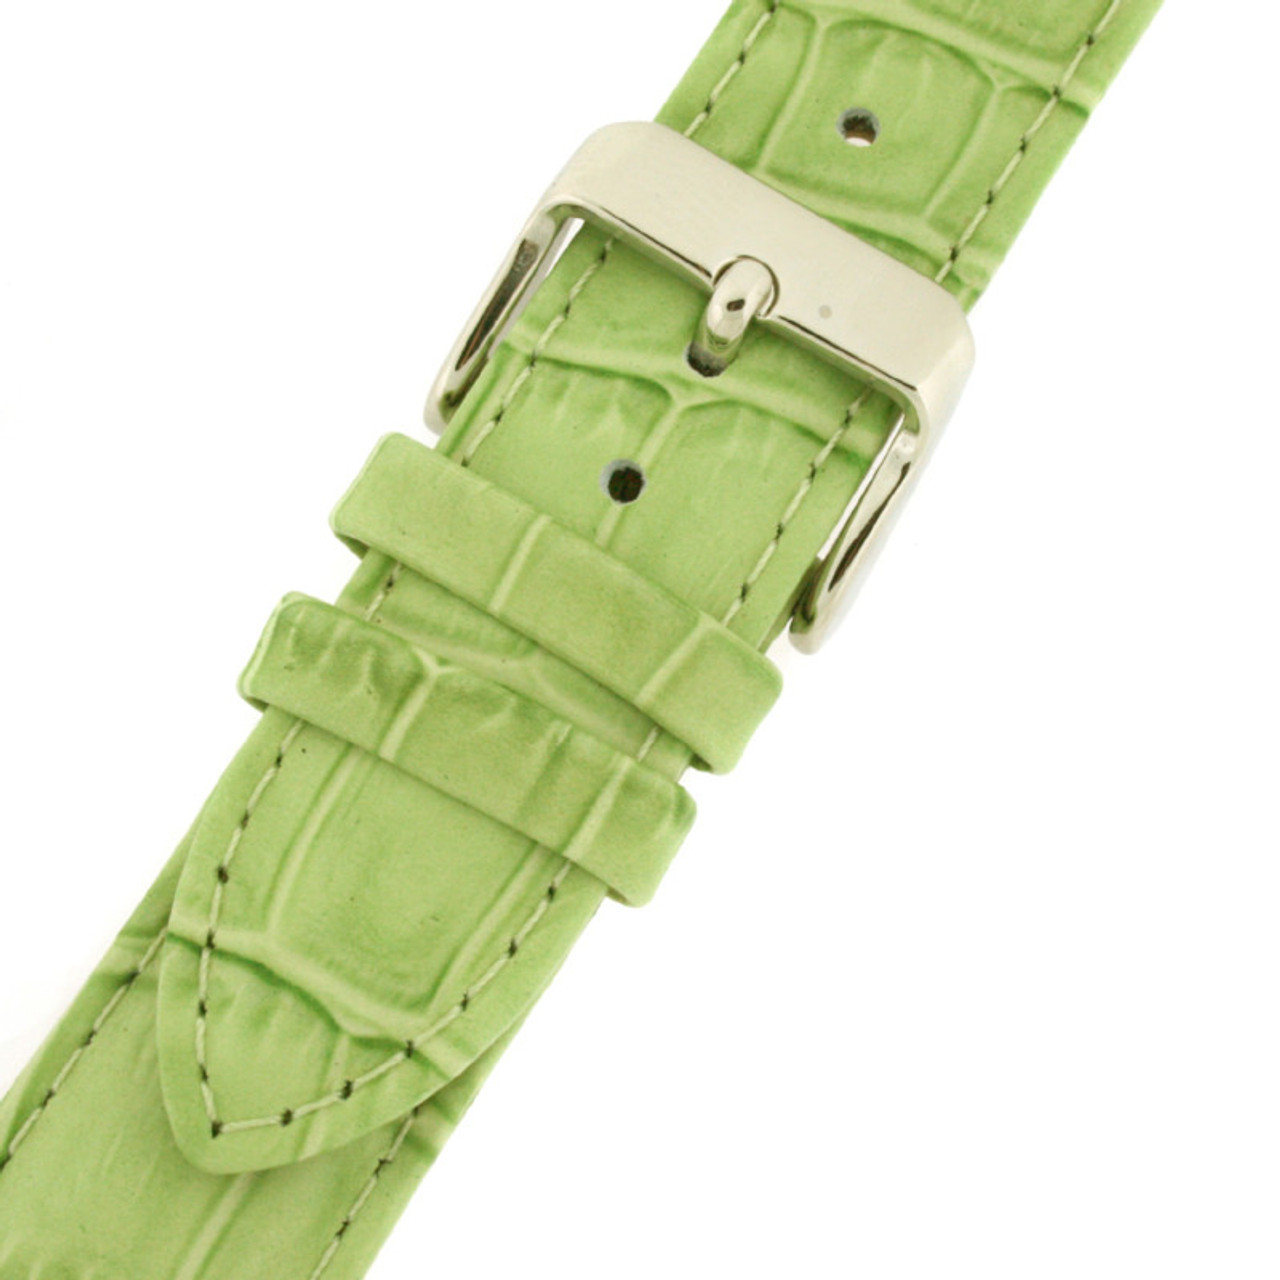 Leather Watch Band with Alligator Grain Print in Lime Green by Tech Swiss - Buckle View